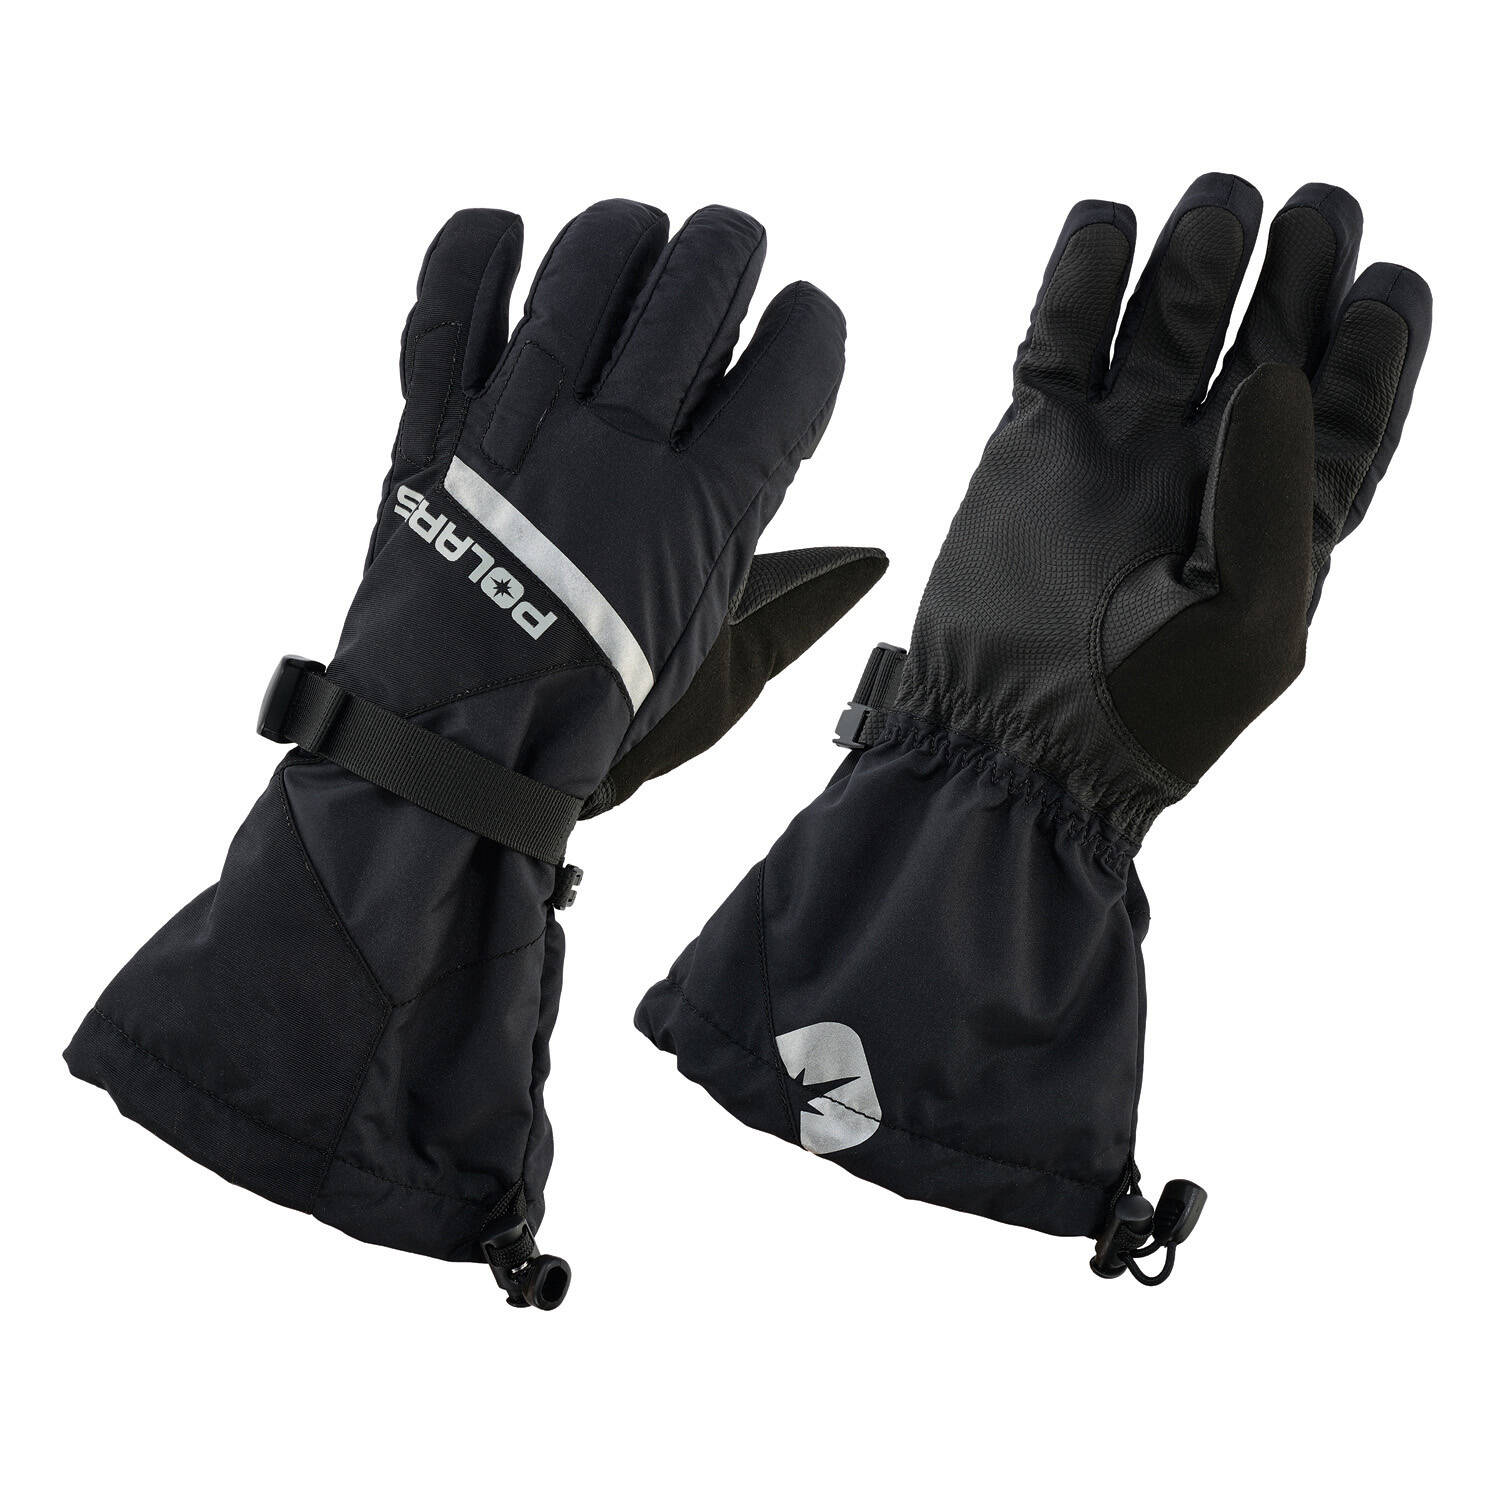 Men's Level 2 Trail Glove with Anti-Slip Technology, Black